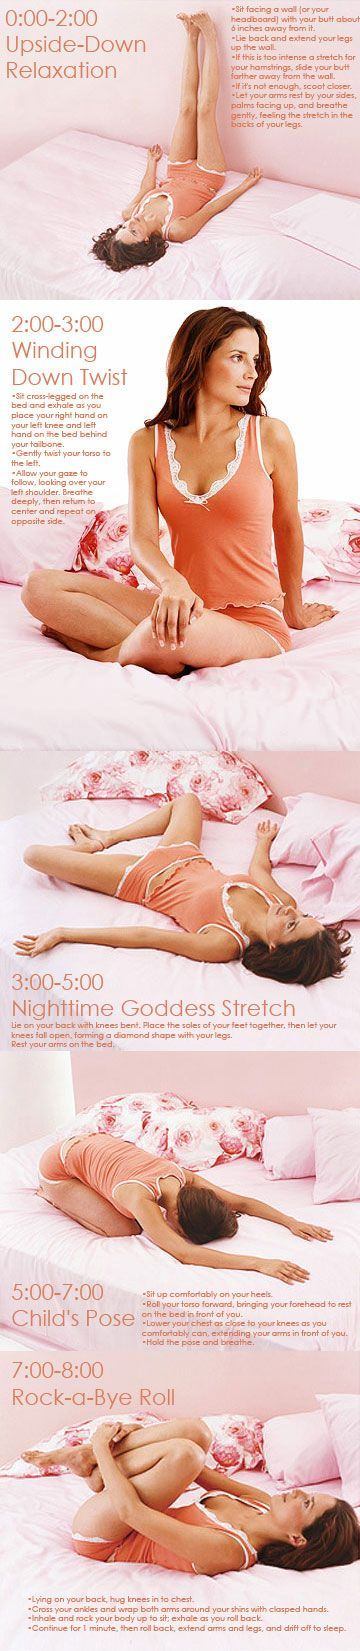 Yoga postures for improved sleep